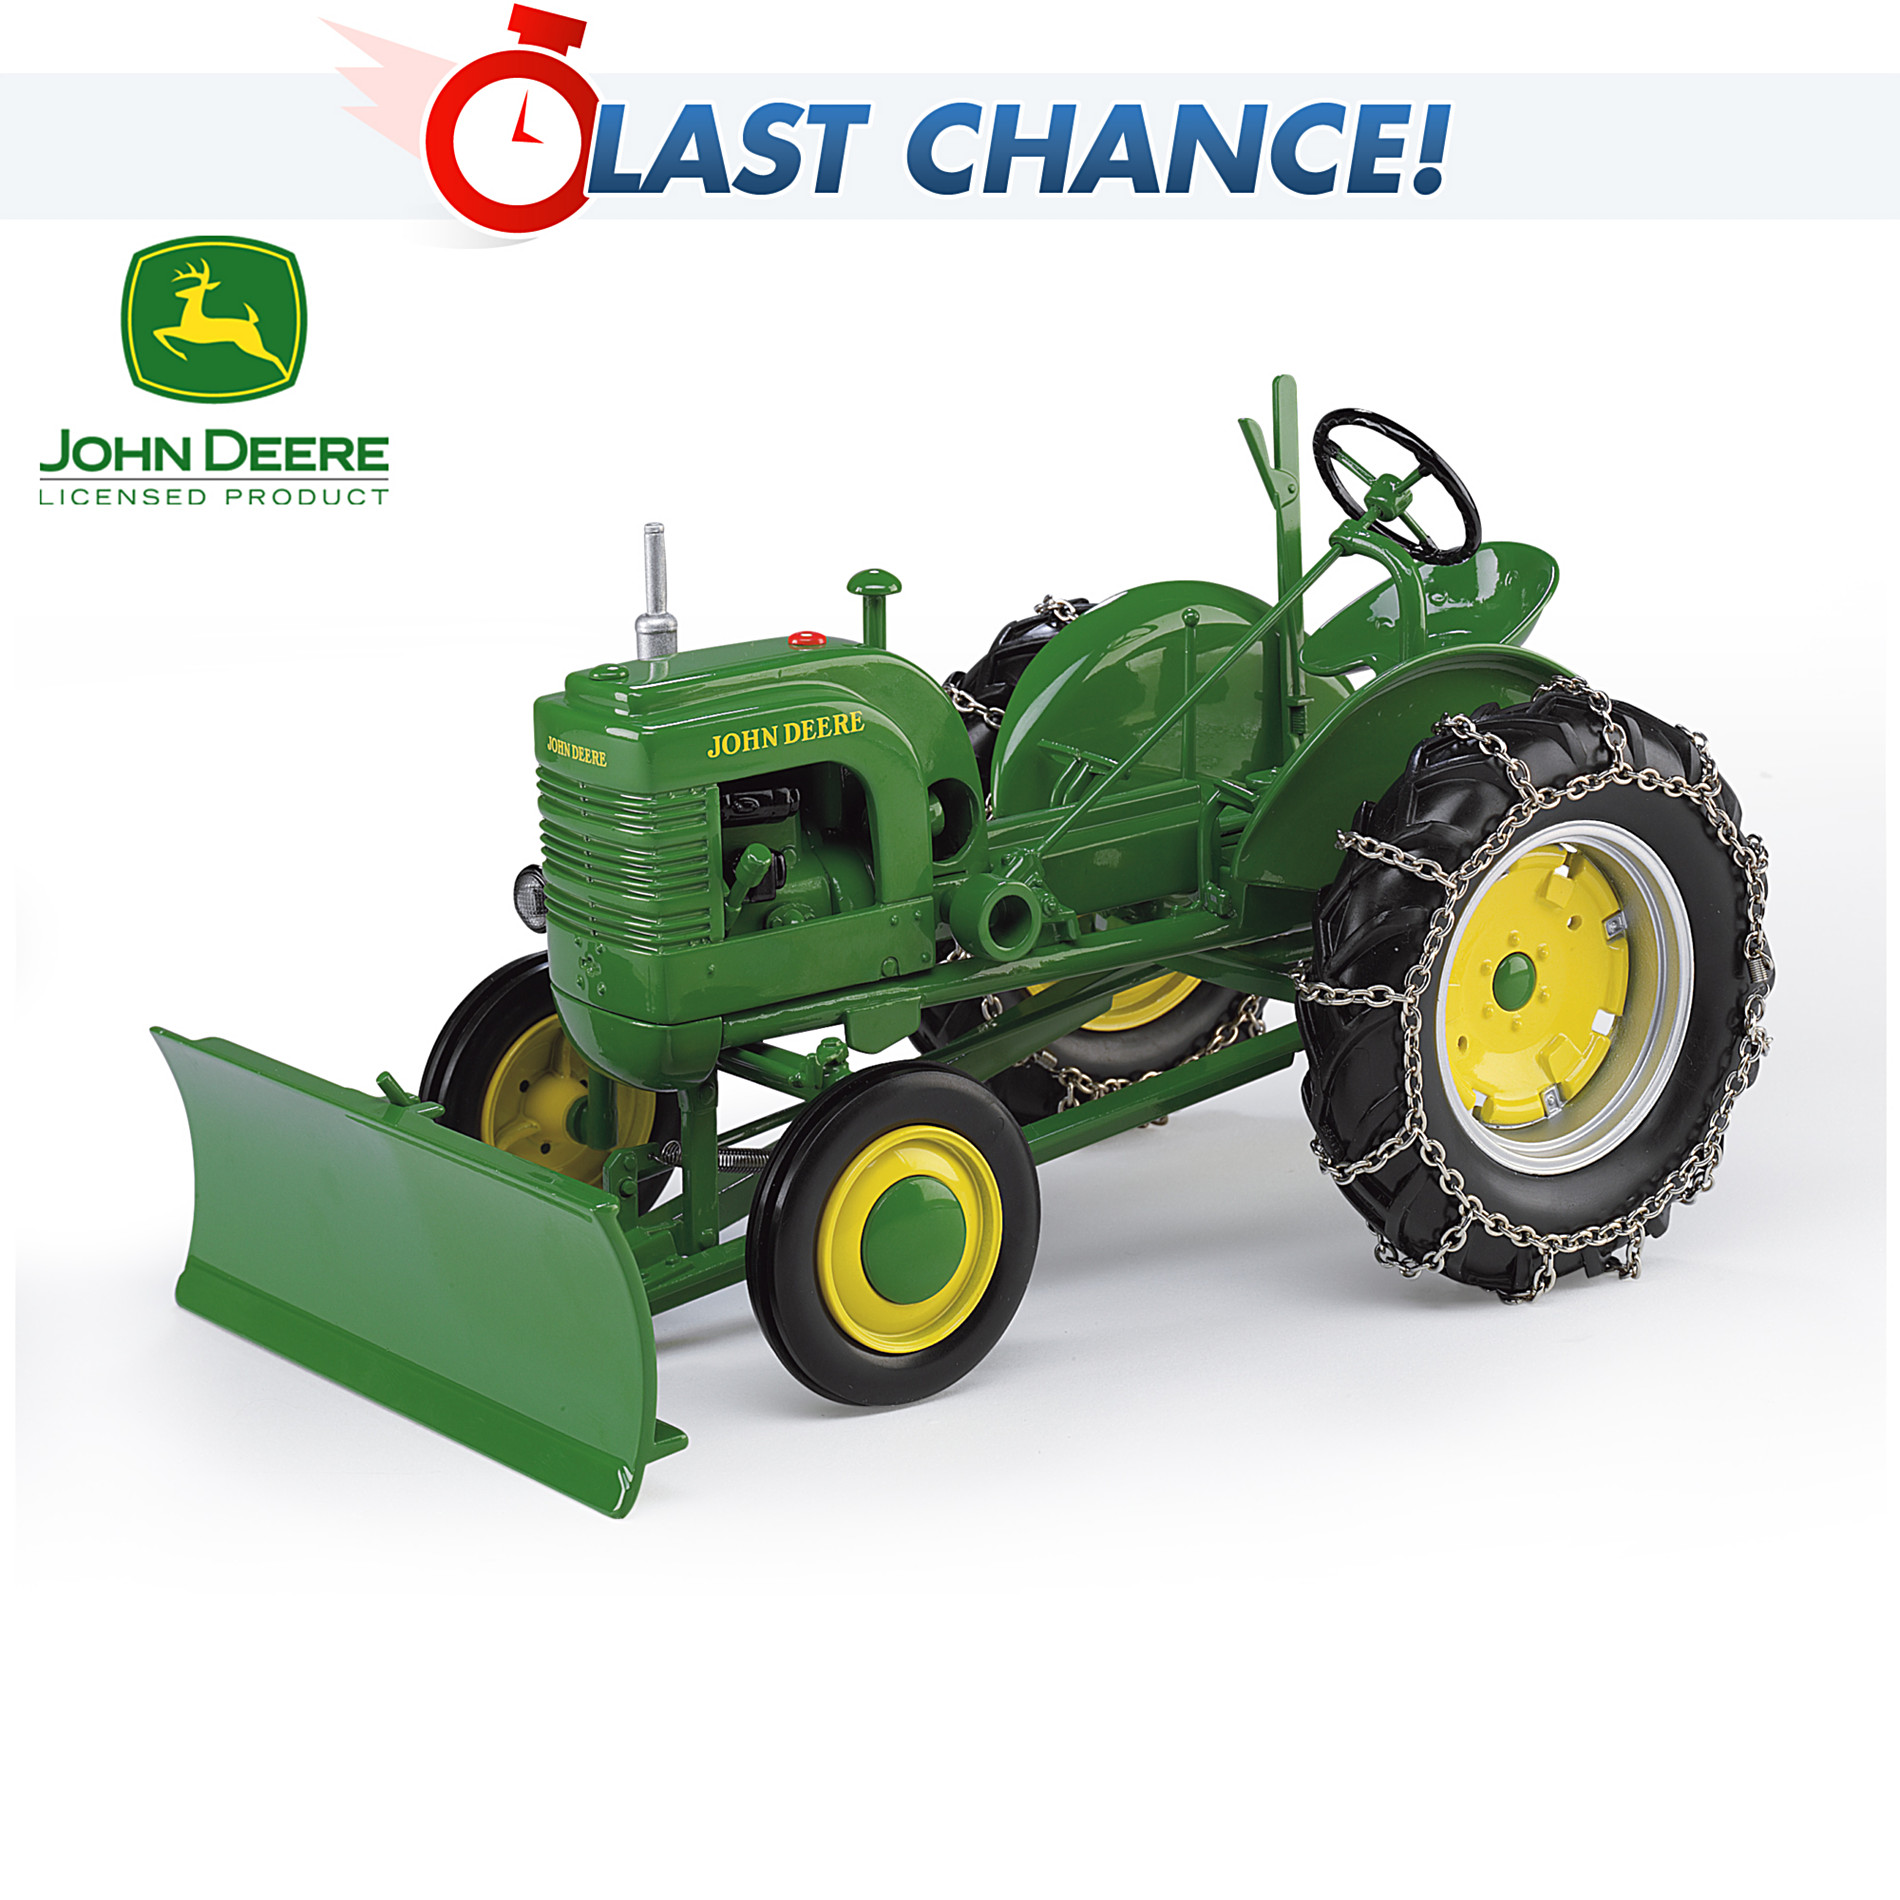 The Hamilton Collection The John Deere Model LA SpecCast Diecast Replica Tractor at Sears.com